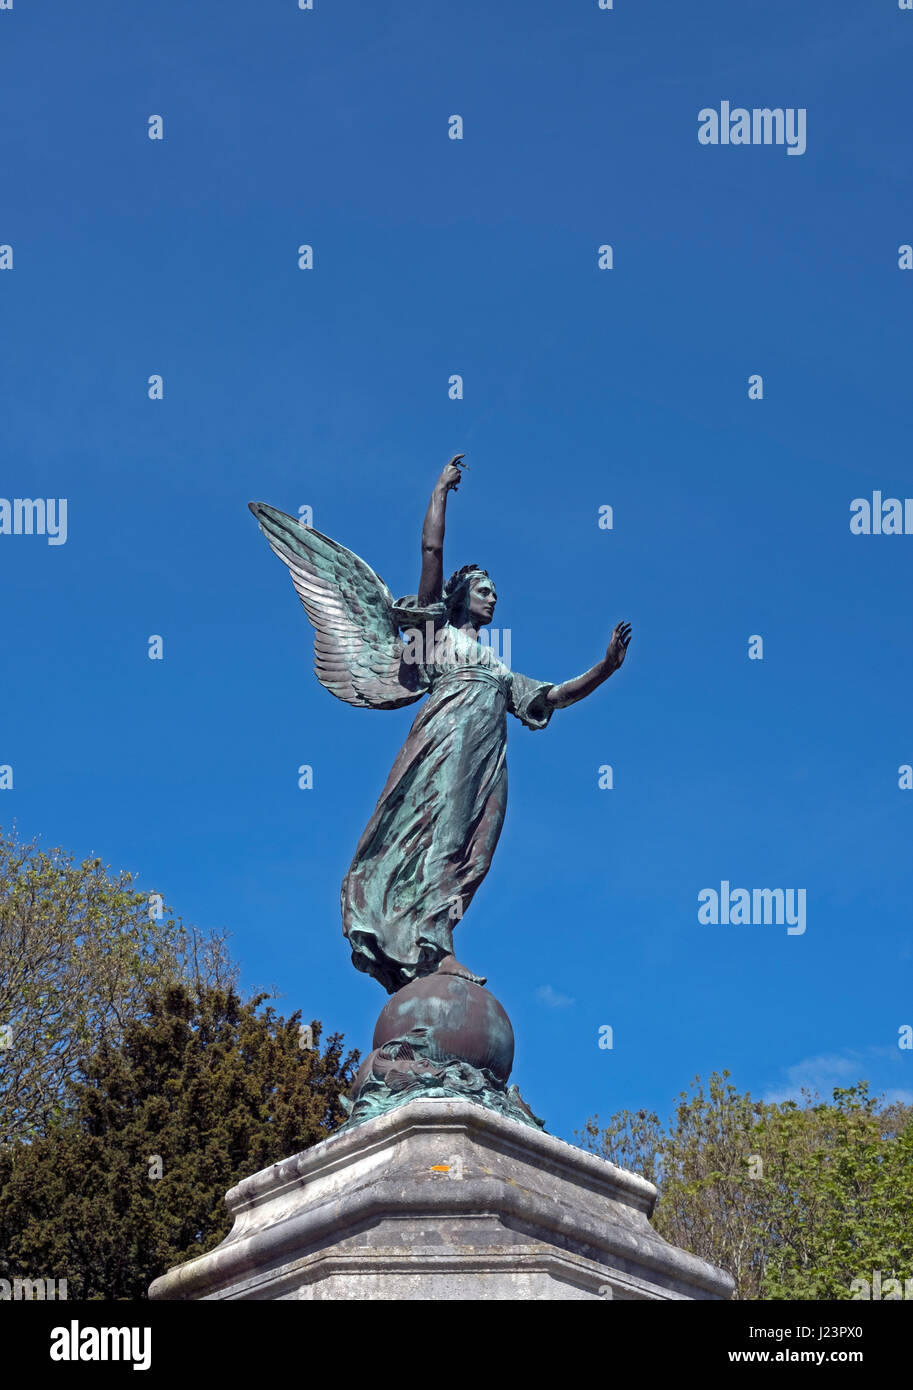 A statue of a winged Victory by Alfred Drury which surmounts the war memorial in Grove Park, Weston-super-Mare, - Stock Image